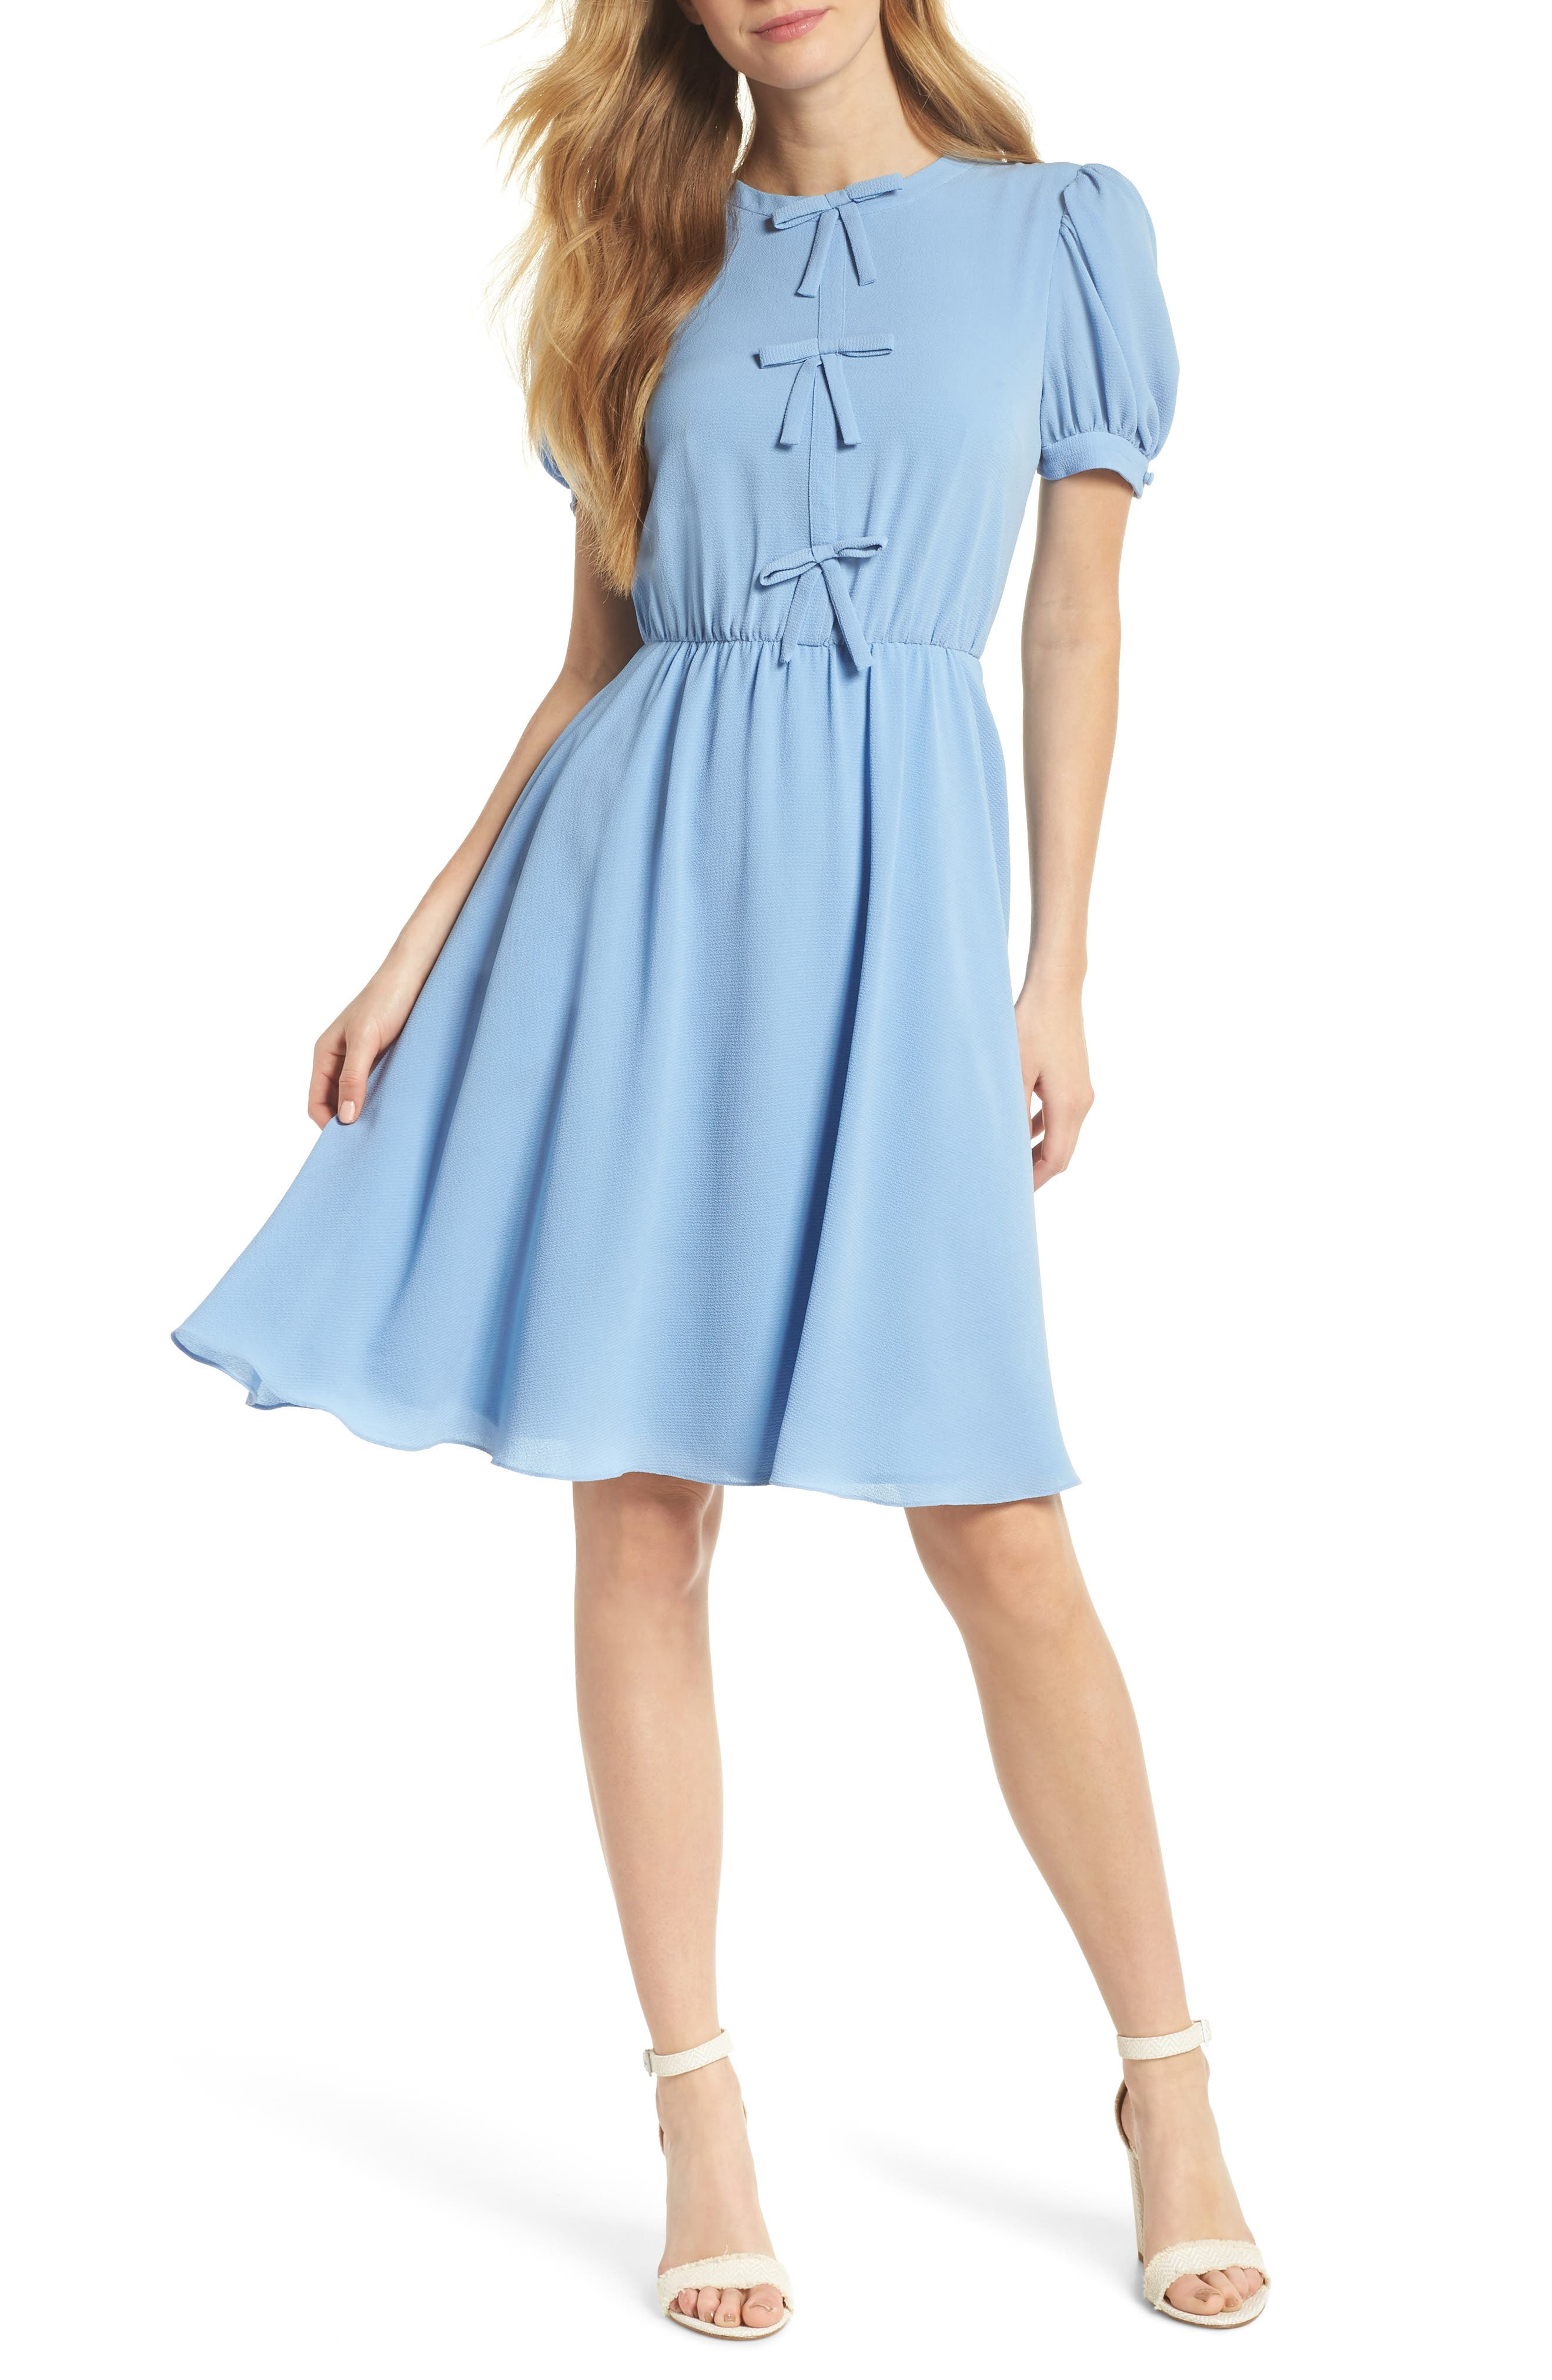 Ellie Crepe Puff Sleeve Dress,                         Main,                         color, Sky Blue